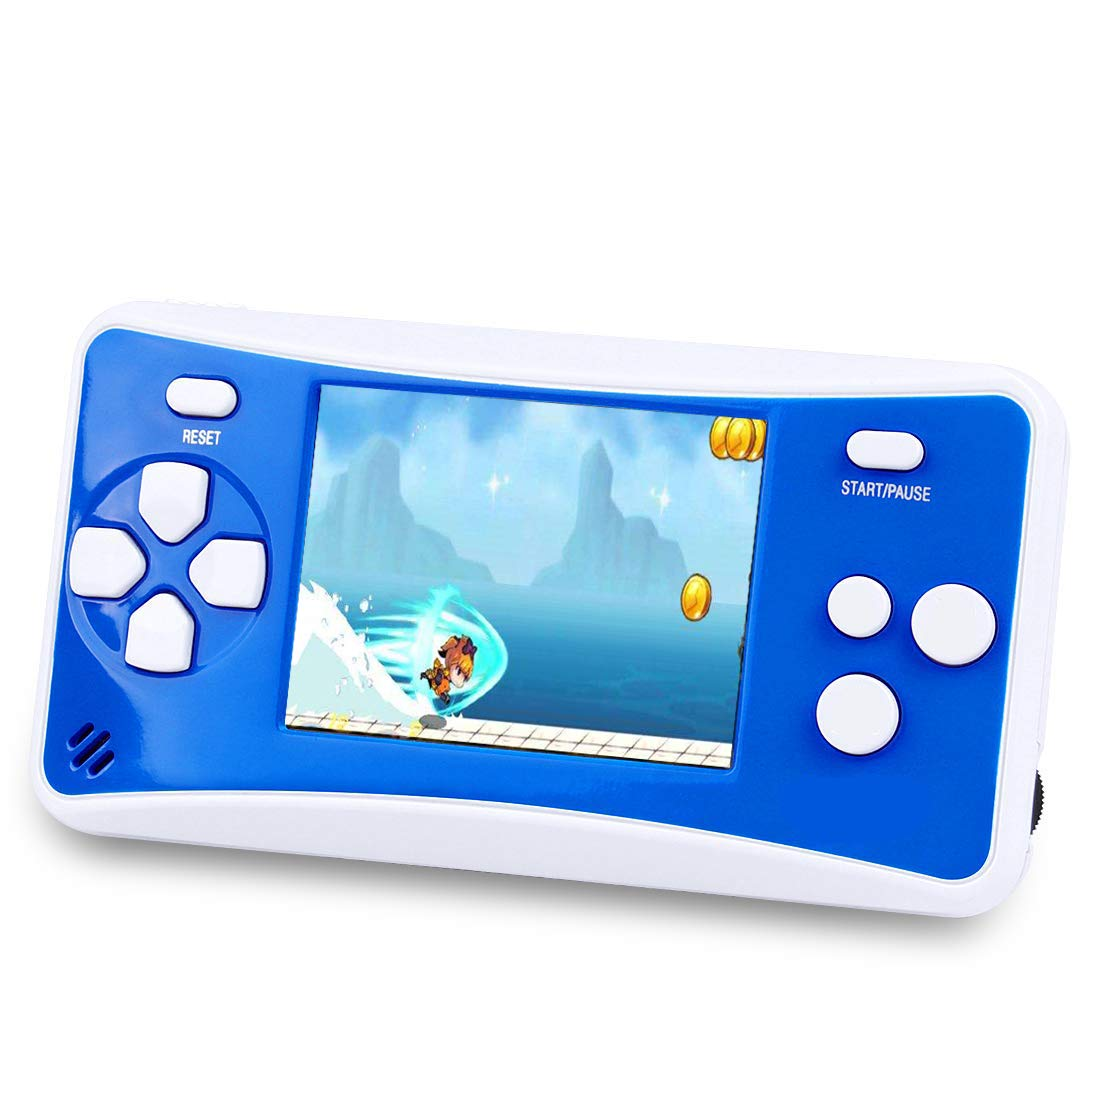 Handheld Game Console for Children,The 80's Arcade Retro Game Player with 2.5'' 8-Bit LCD Portable Video Games Can Connected TV,Built-in 152 Classic Old School Game(Blue1) by Sokolp (Image #1)